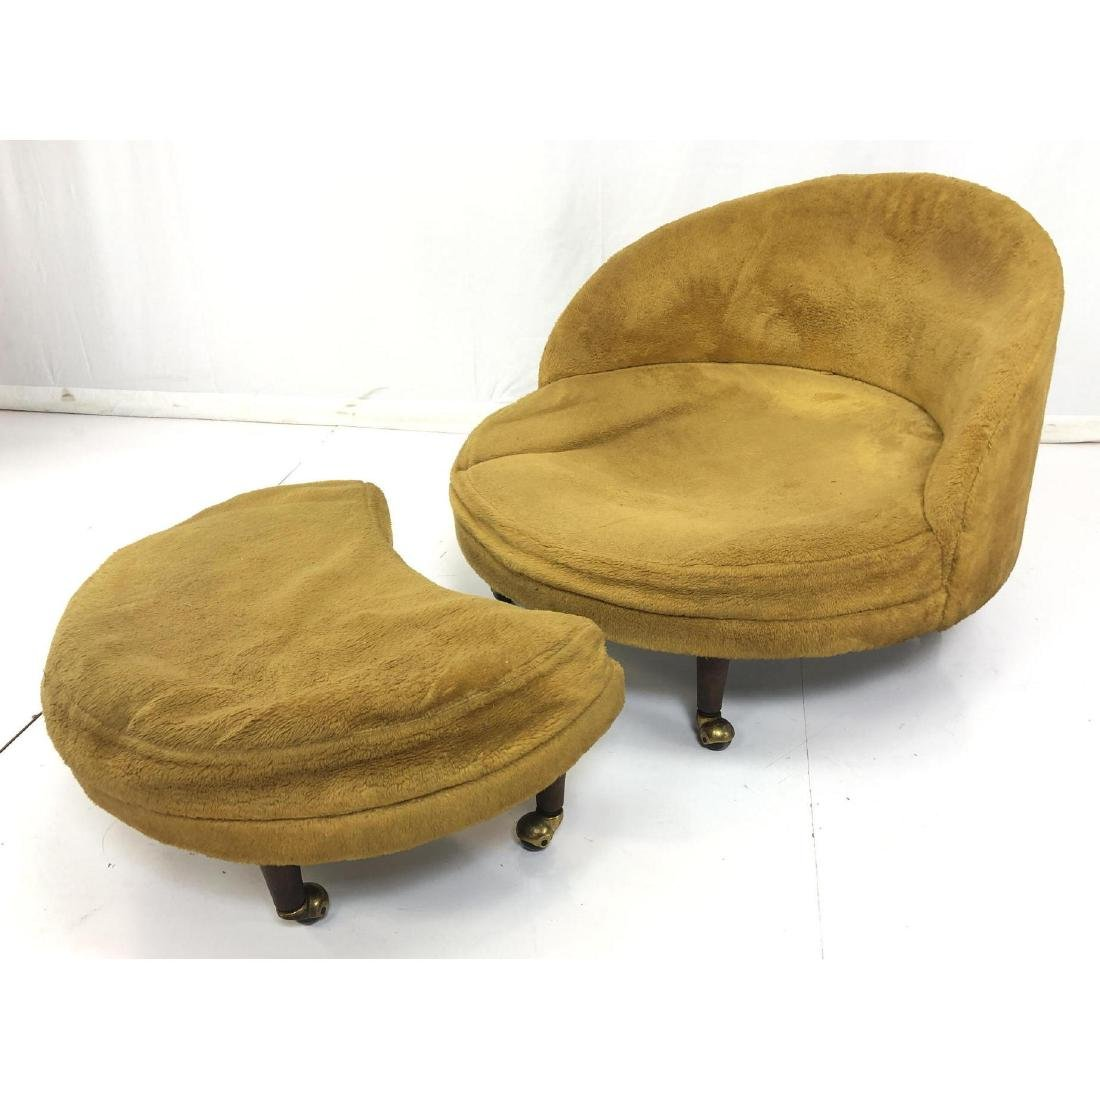 2pc ADRIAN PEARSALL Circle Lounge Chair & Ottoman